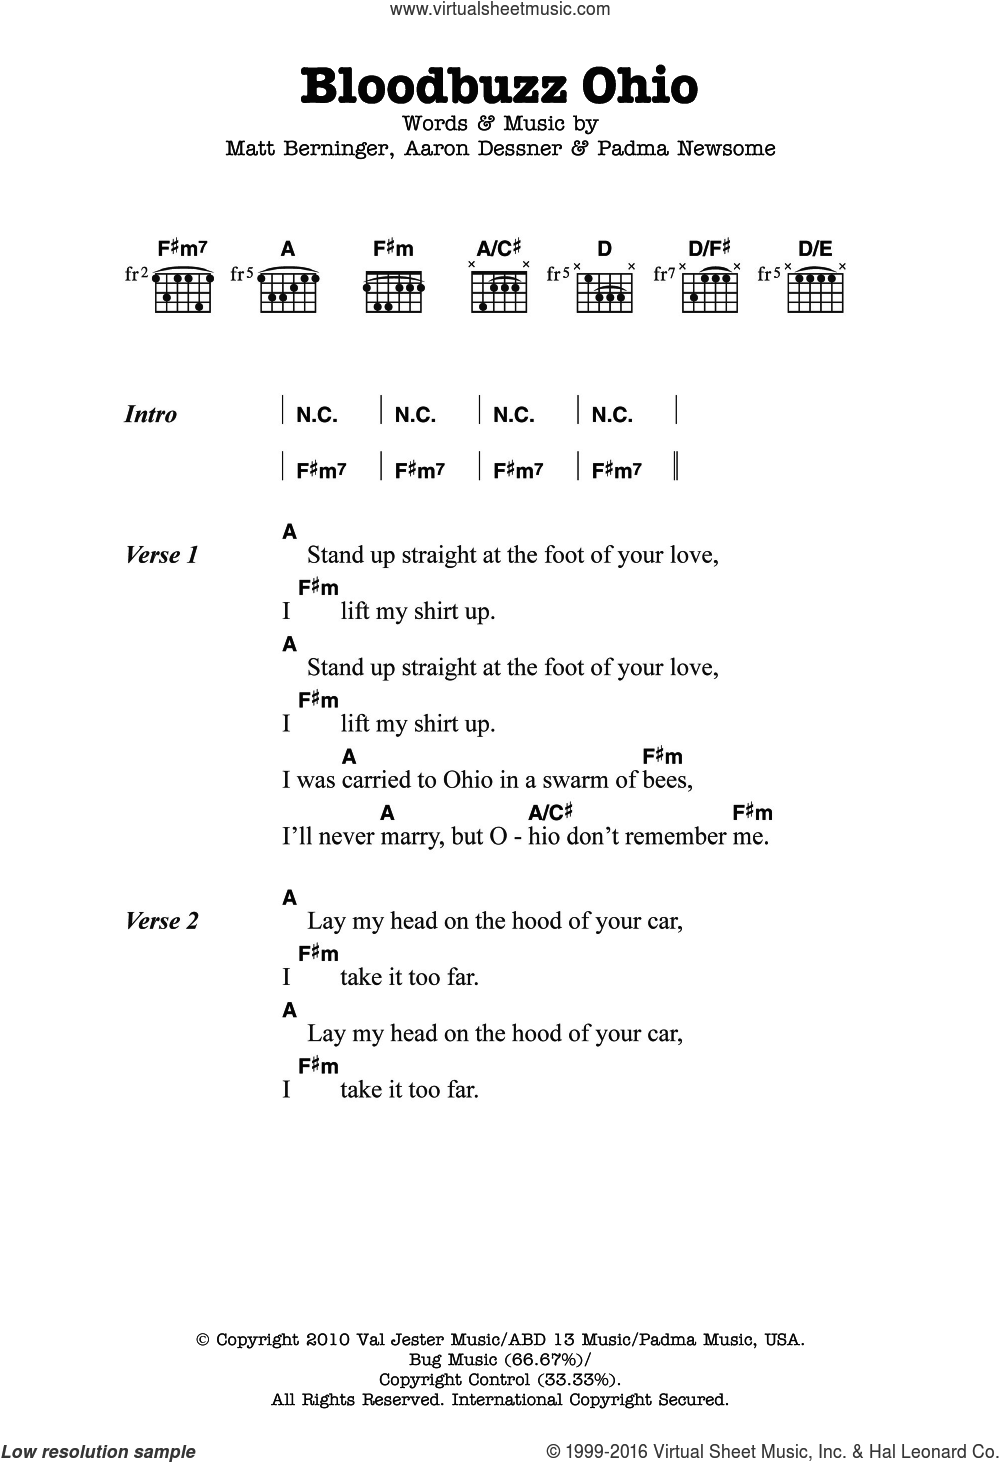 Bloodbuzz Ohio sheet music for guitar (chords) by Padma Newsome, Aaron Dessner and Matt Berninger. Score Image Preview.